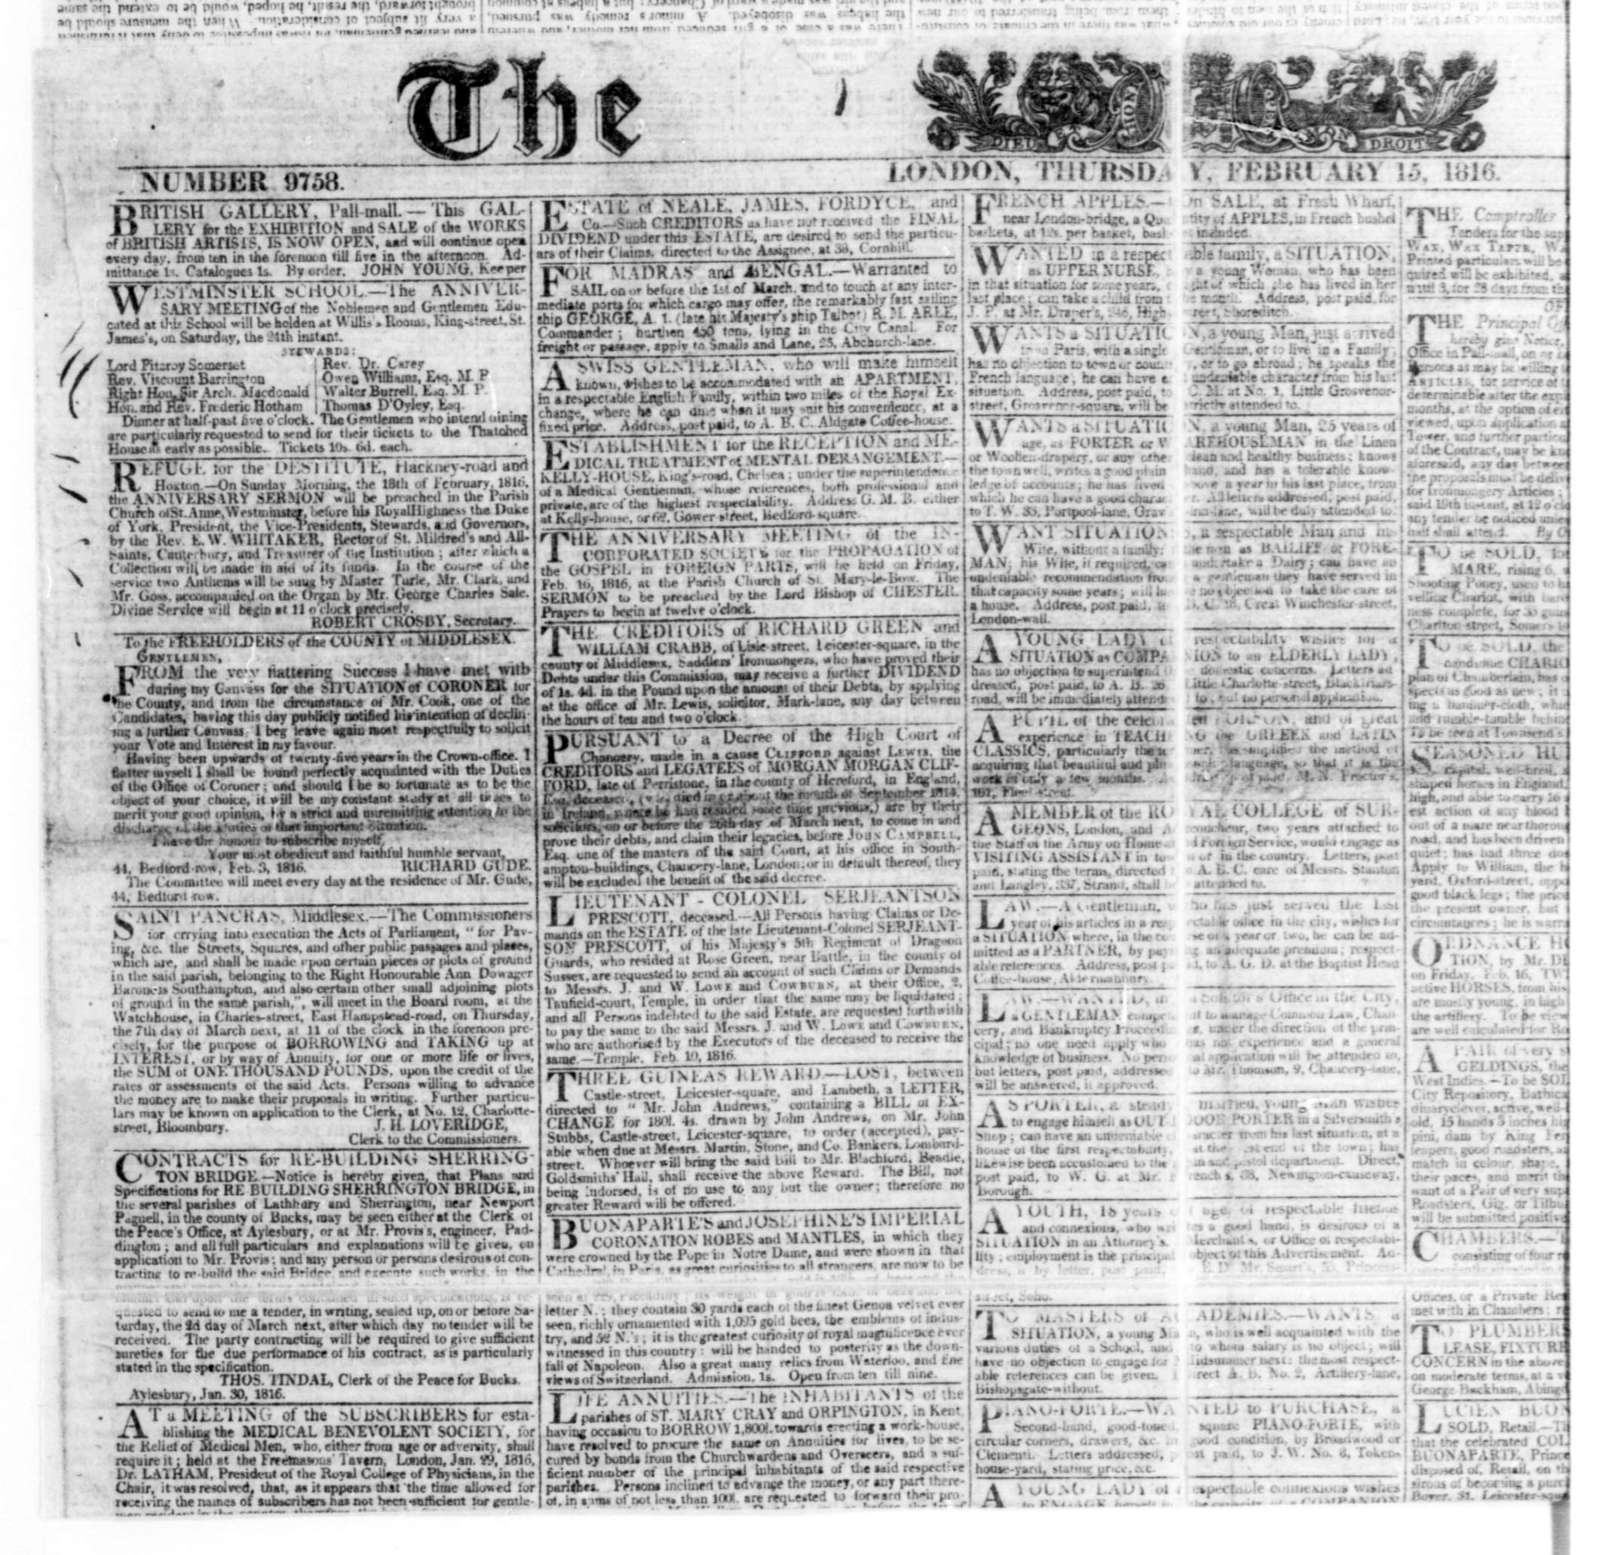 February 15, 1816. Clipping from the The Times, London, England.